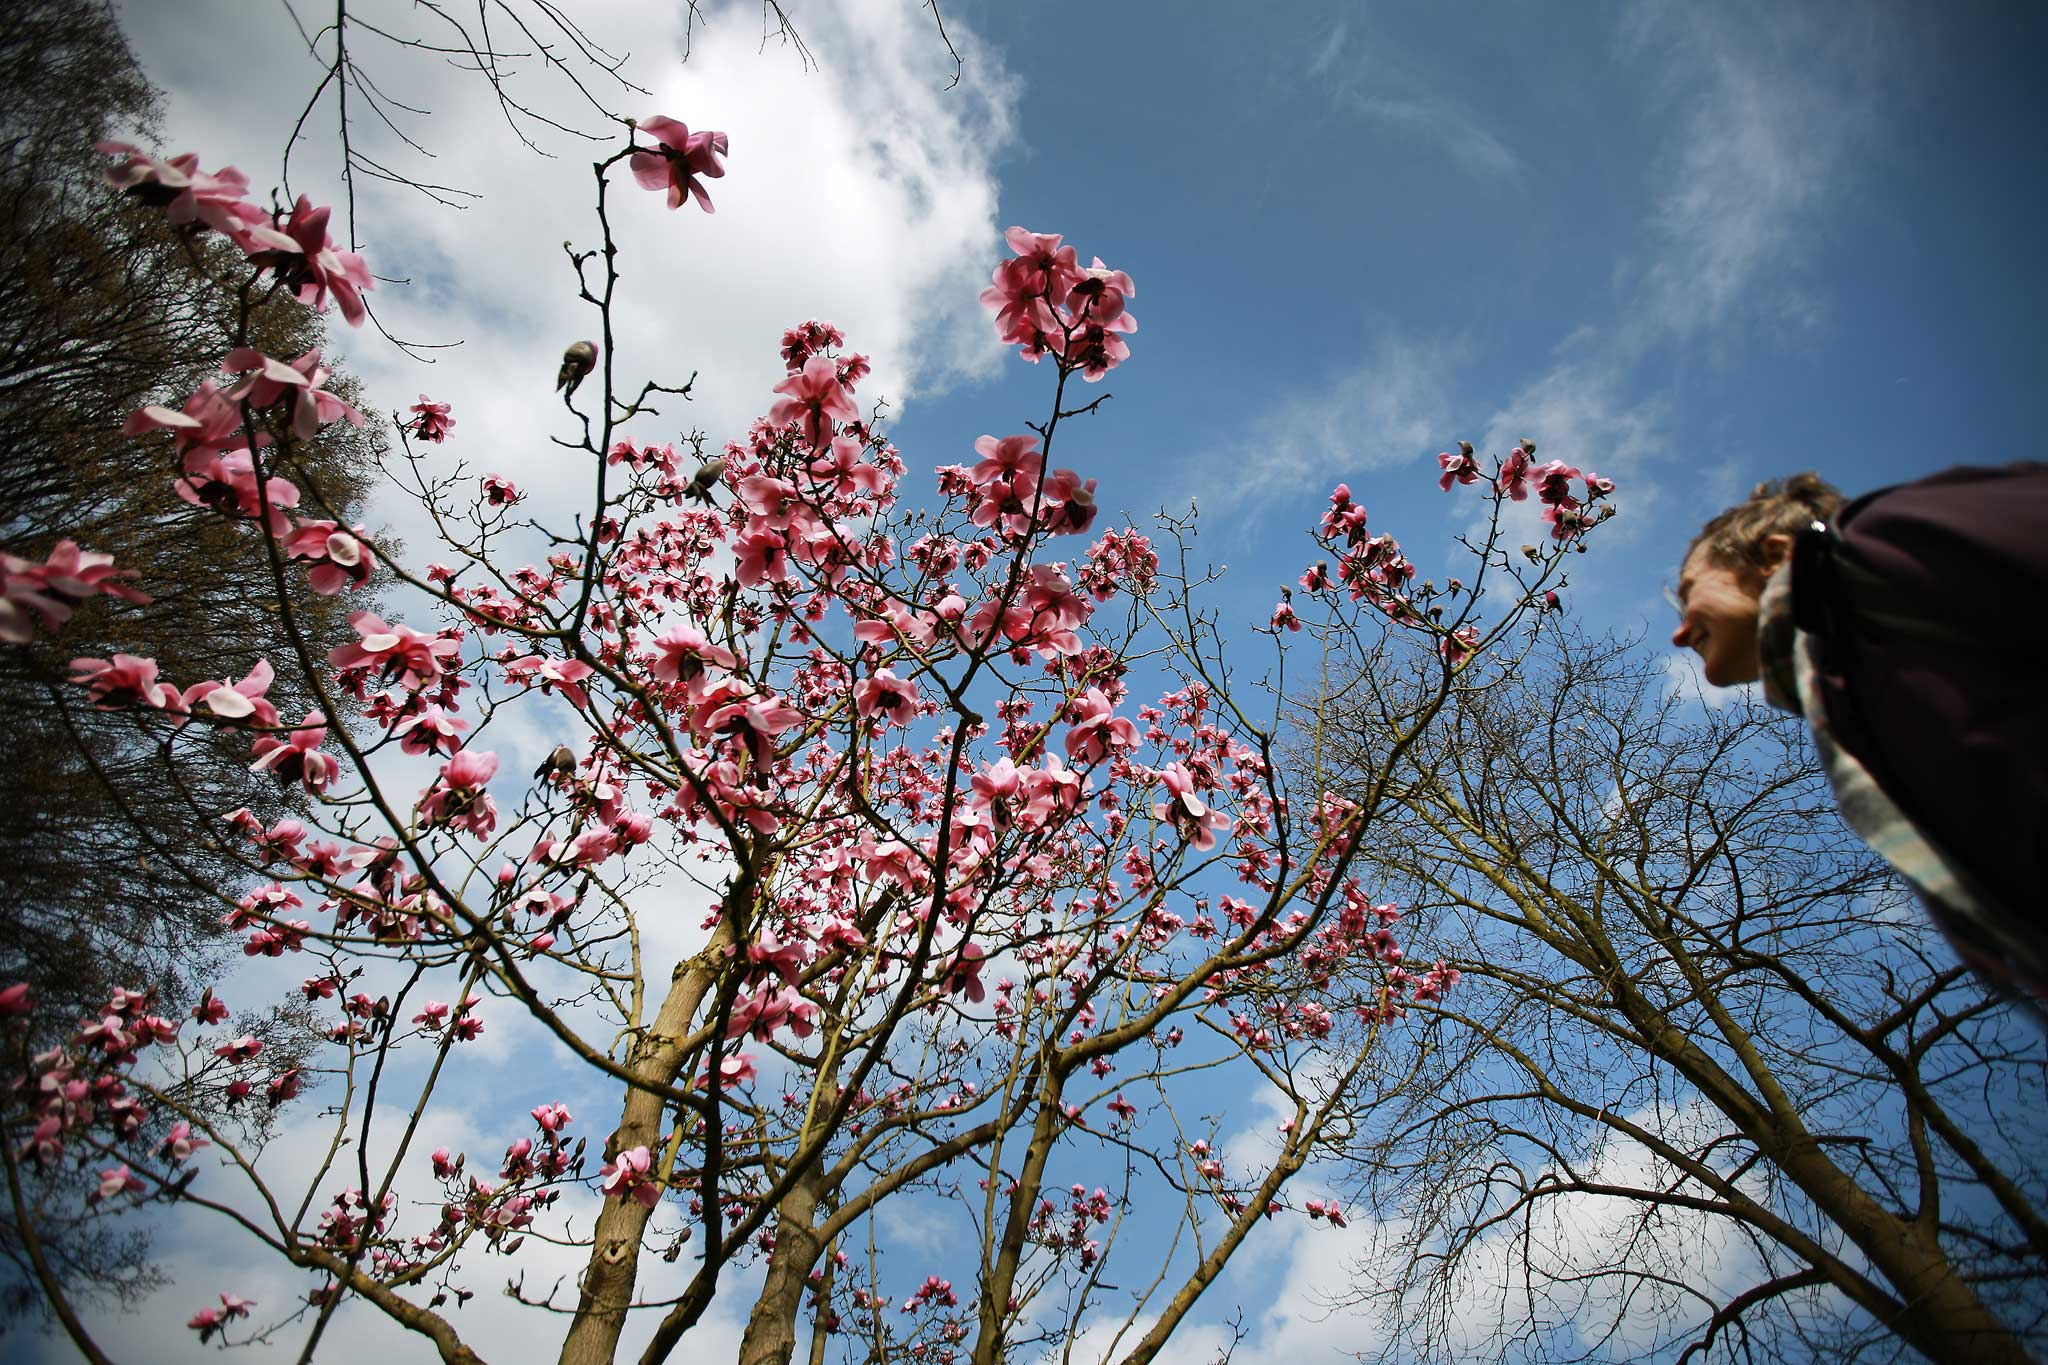 Emma Townshend Magnolias Can Block Out The Sun Thank Goodness For